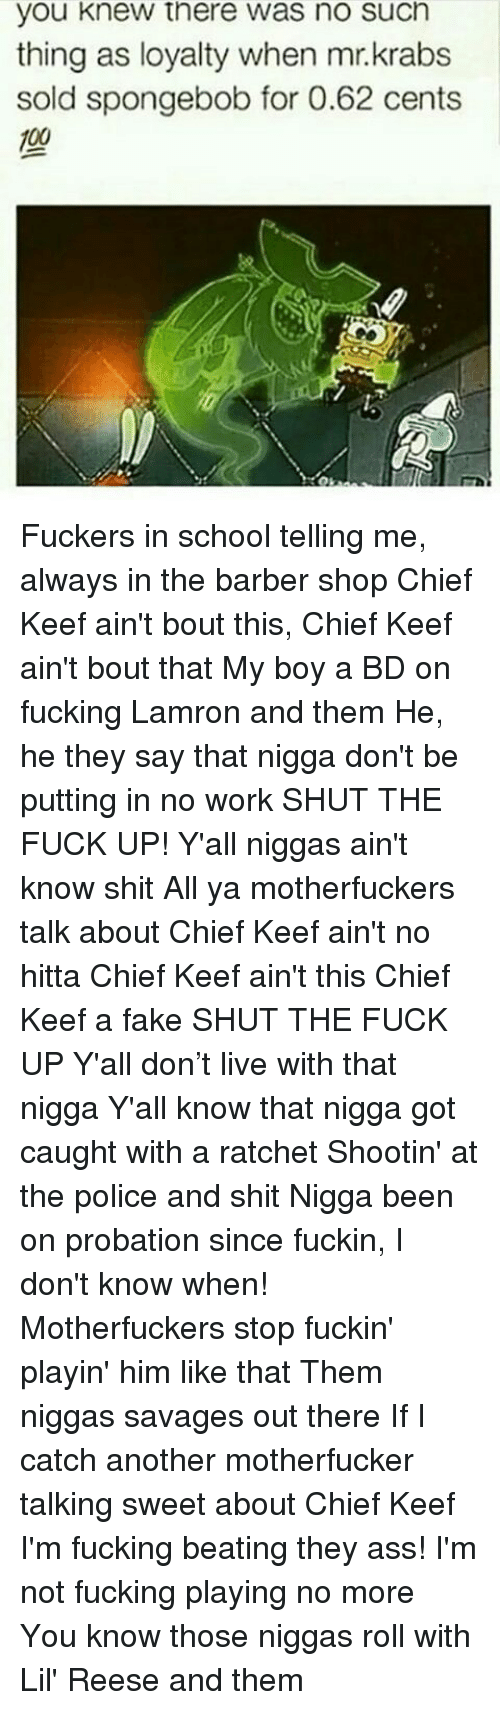 The Barber Shop: you knew there was no such  thing as loyalty when mr.krabs  sold spongebob for 0.62 cents Fuckers in school telling me, always in the barber shop Chief Keef ain't bout this, Chief Keef ain't bout that My boy a BD on fucking Lamron and them He, he they say that nigga don't be putting in no work SHUT THE FUCK UP! Y'all niggas ain't know shit All ya motherfuckers talk about Chief Keef ain't no hitta Chief Keef ain't this Chief Keef a fake SHUT THE FUCK UP Y'all don't live with that nigga Y'all know that nigga got caught with a ratchet Shootin' at the police and shit Nigga been on probation since fuckin, I don't know when! Motherfuckers stop fuckin' playin' him like that Them niggas savages out there If I catch another motherfucker talking sweet about Chief Keef I'm fucking beating they ass! I'm not fucking playing no more You know those niggas roll with Lil' Reese and them